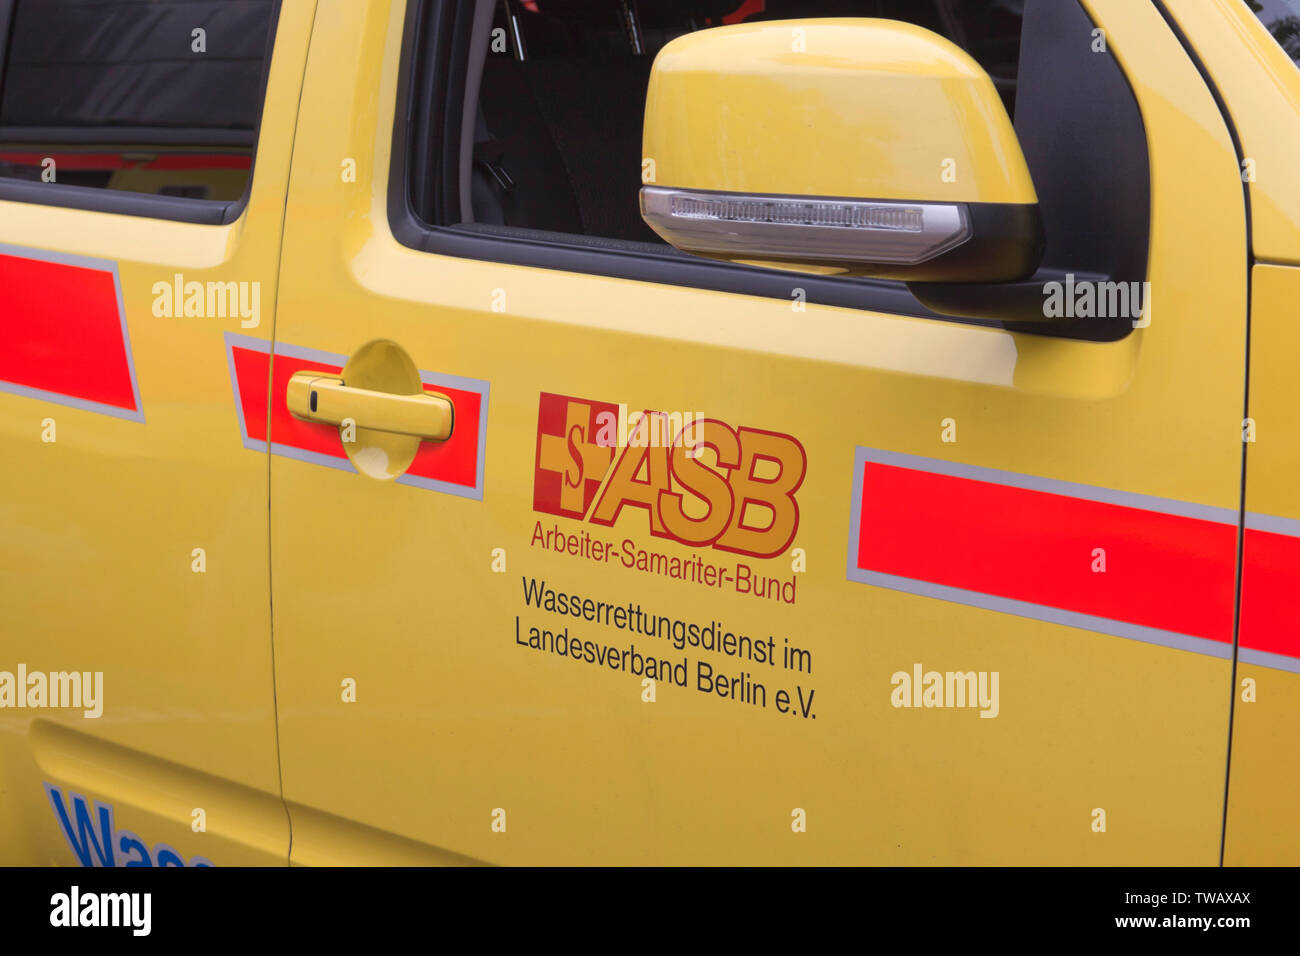 Asb Stock Photos & Asb Stock Images - Alamy